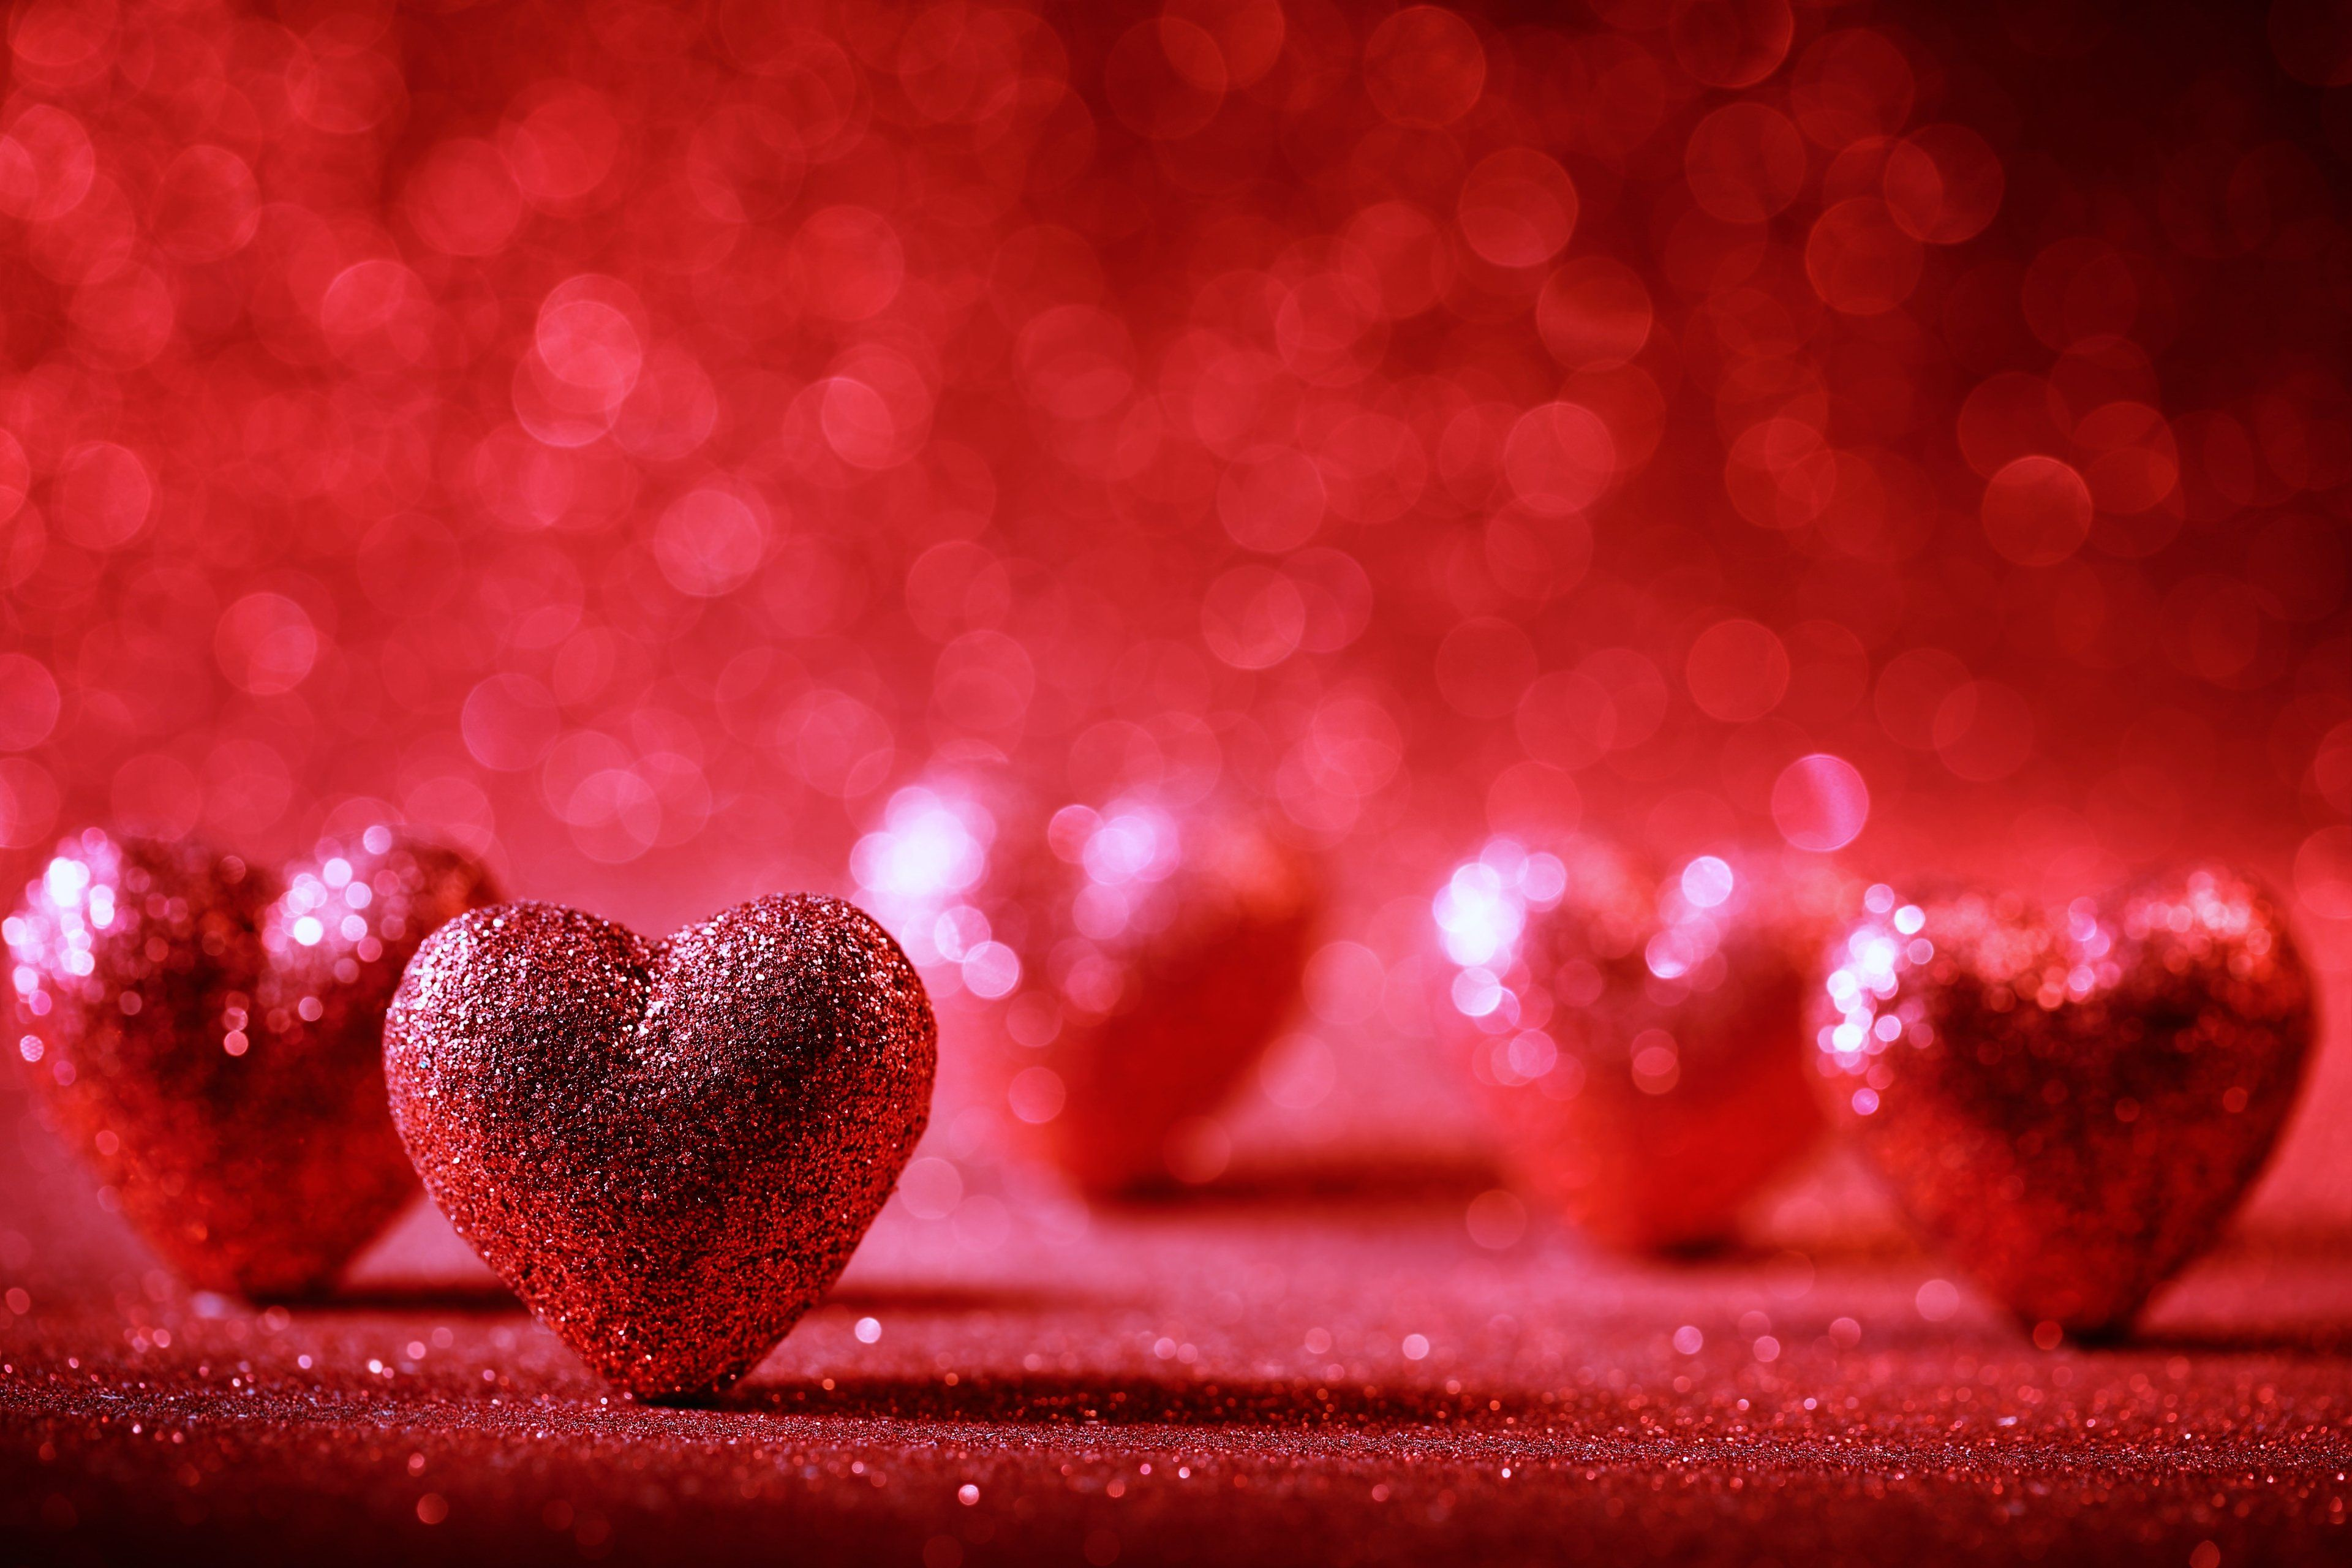 Best HD Love Romance and Heart Wallpapers Design  Best